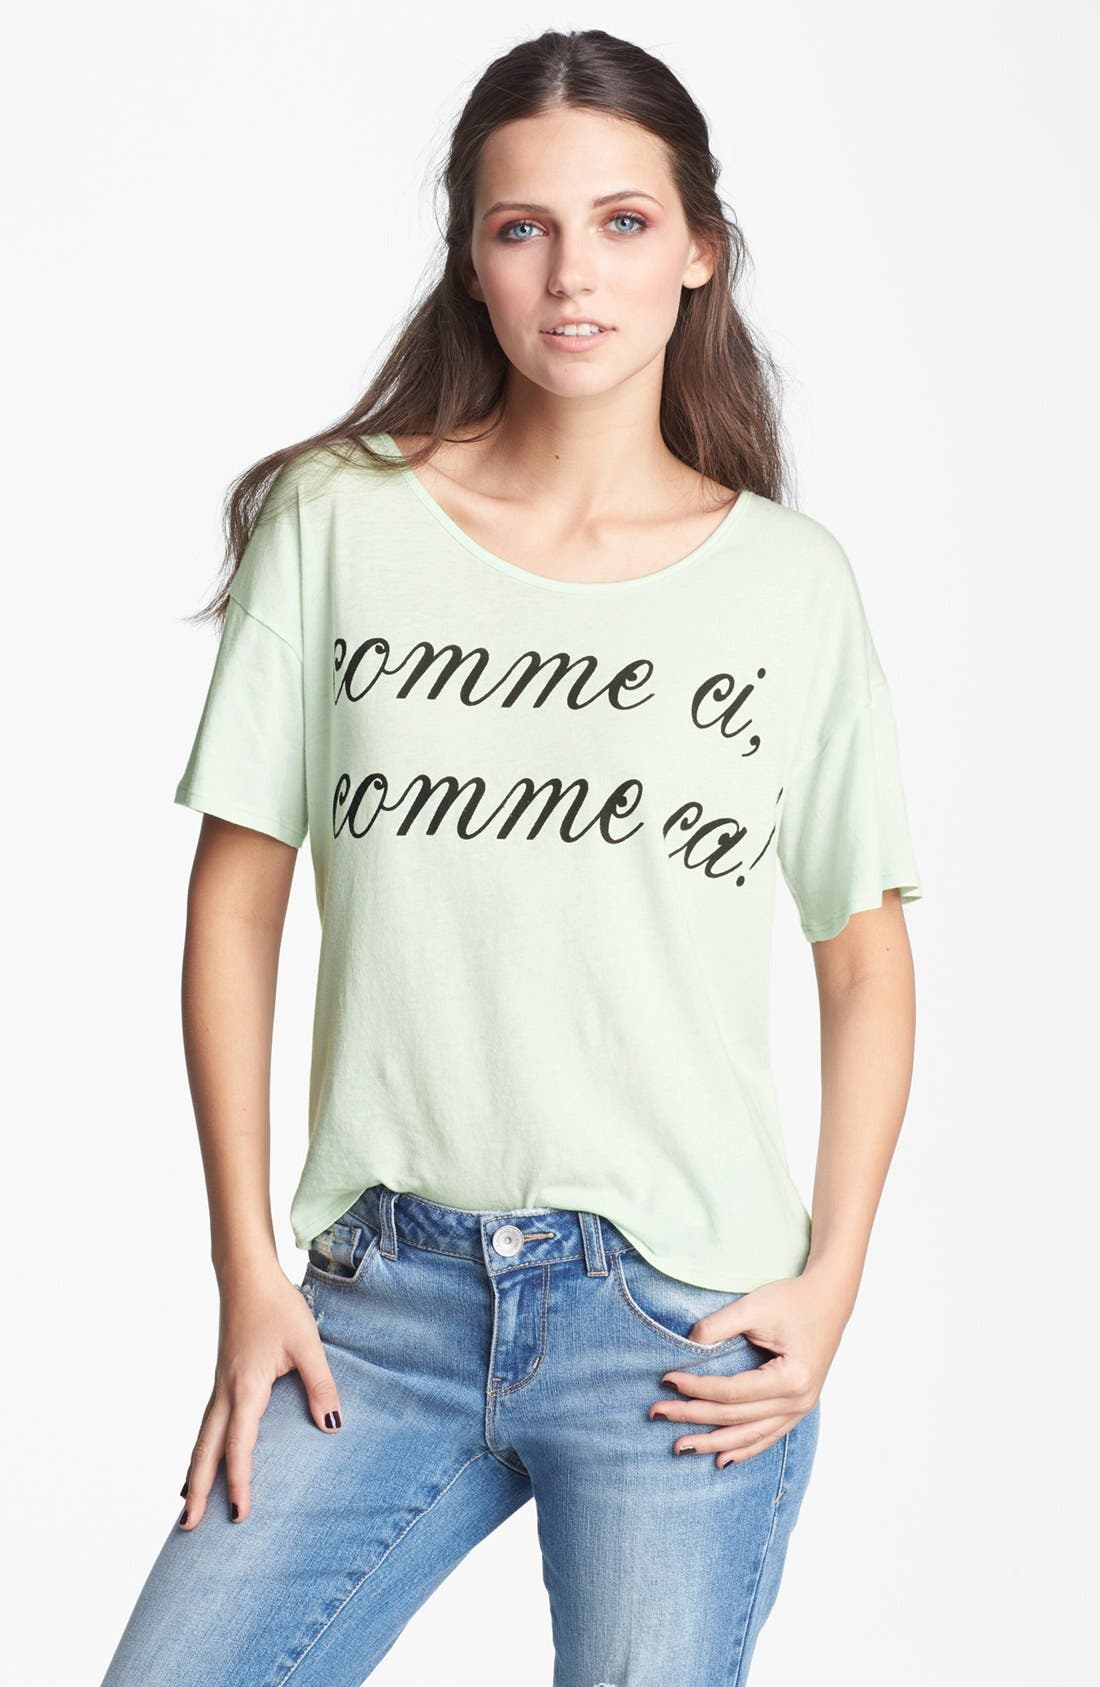 Alternate Image 1 Selected - Ten Sixty Sherman 'Comme Ci Comme Ca' Tee (Juniors)